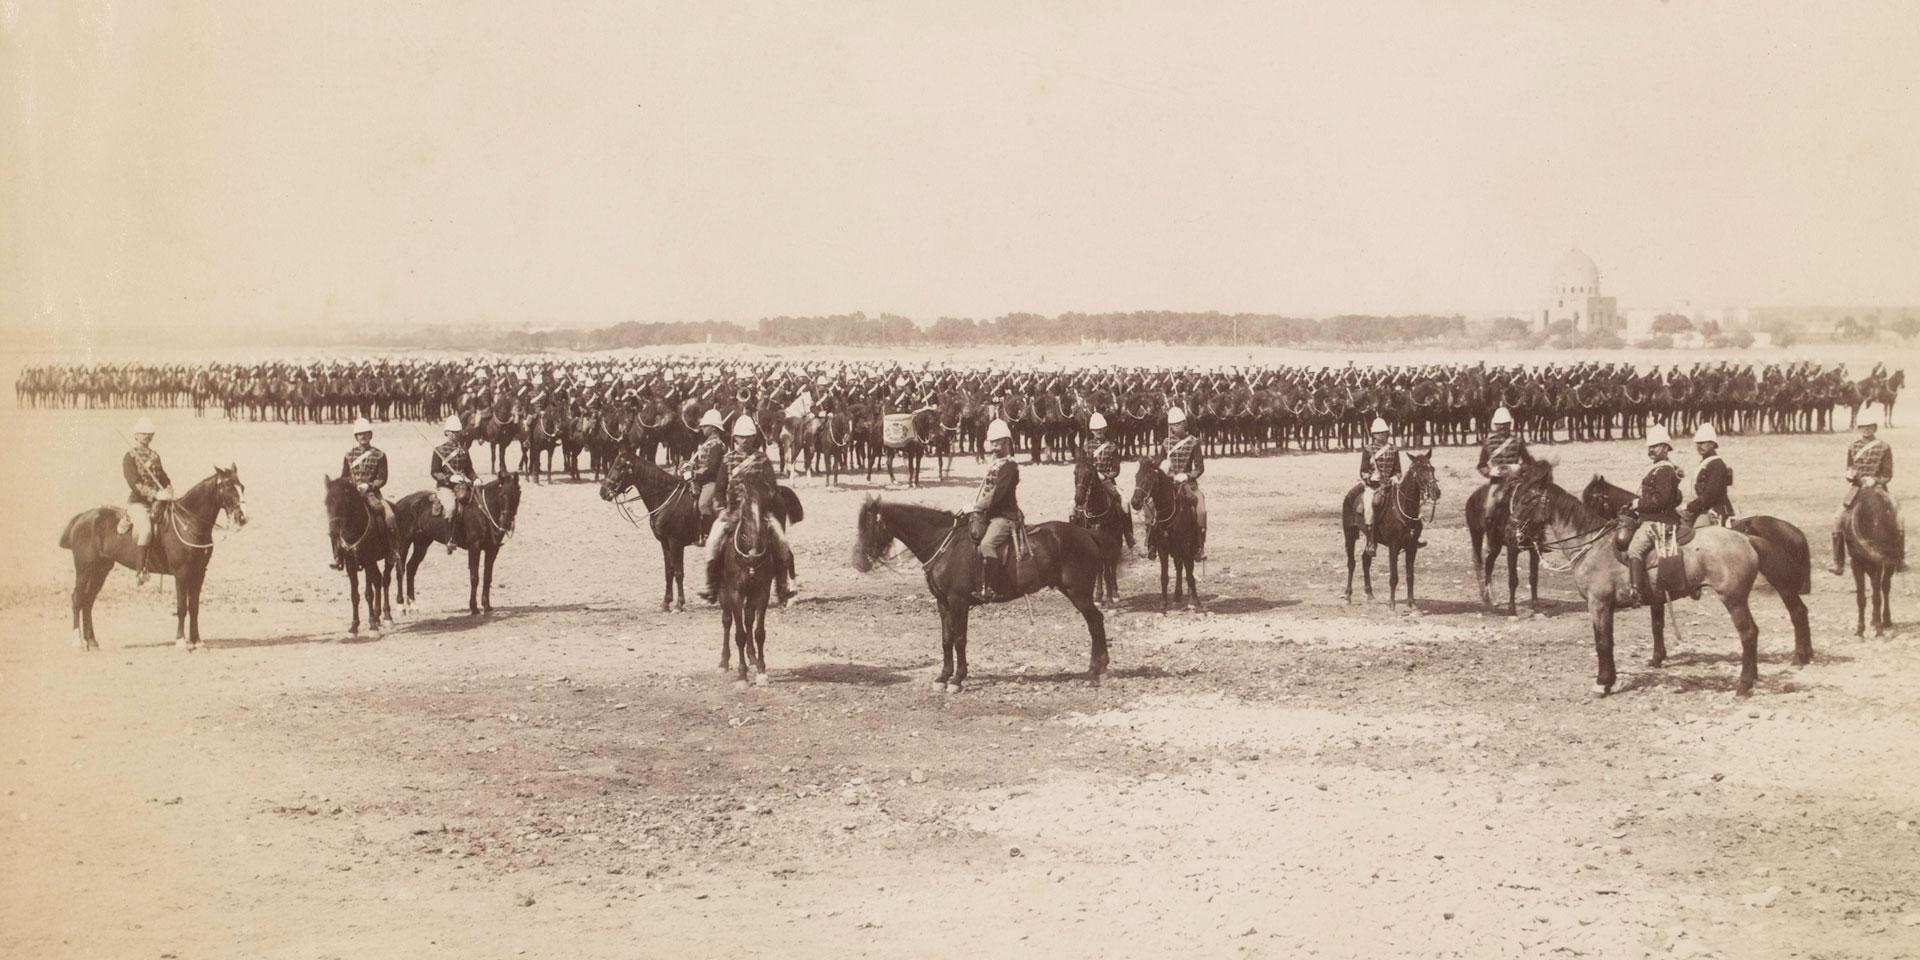 19th Royal Hussars (Queen Alexandra's Own) formed up, 1882